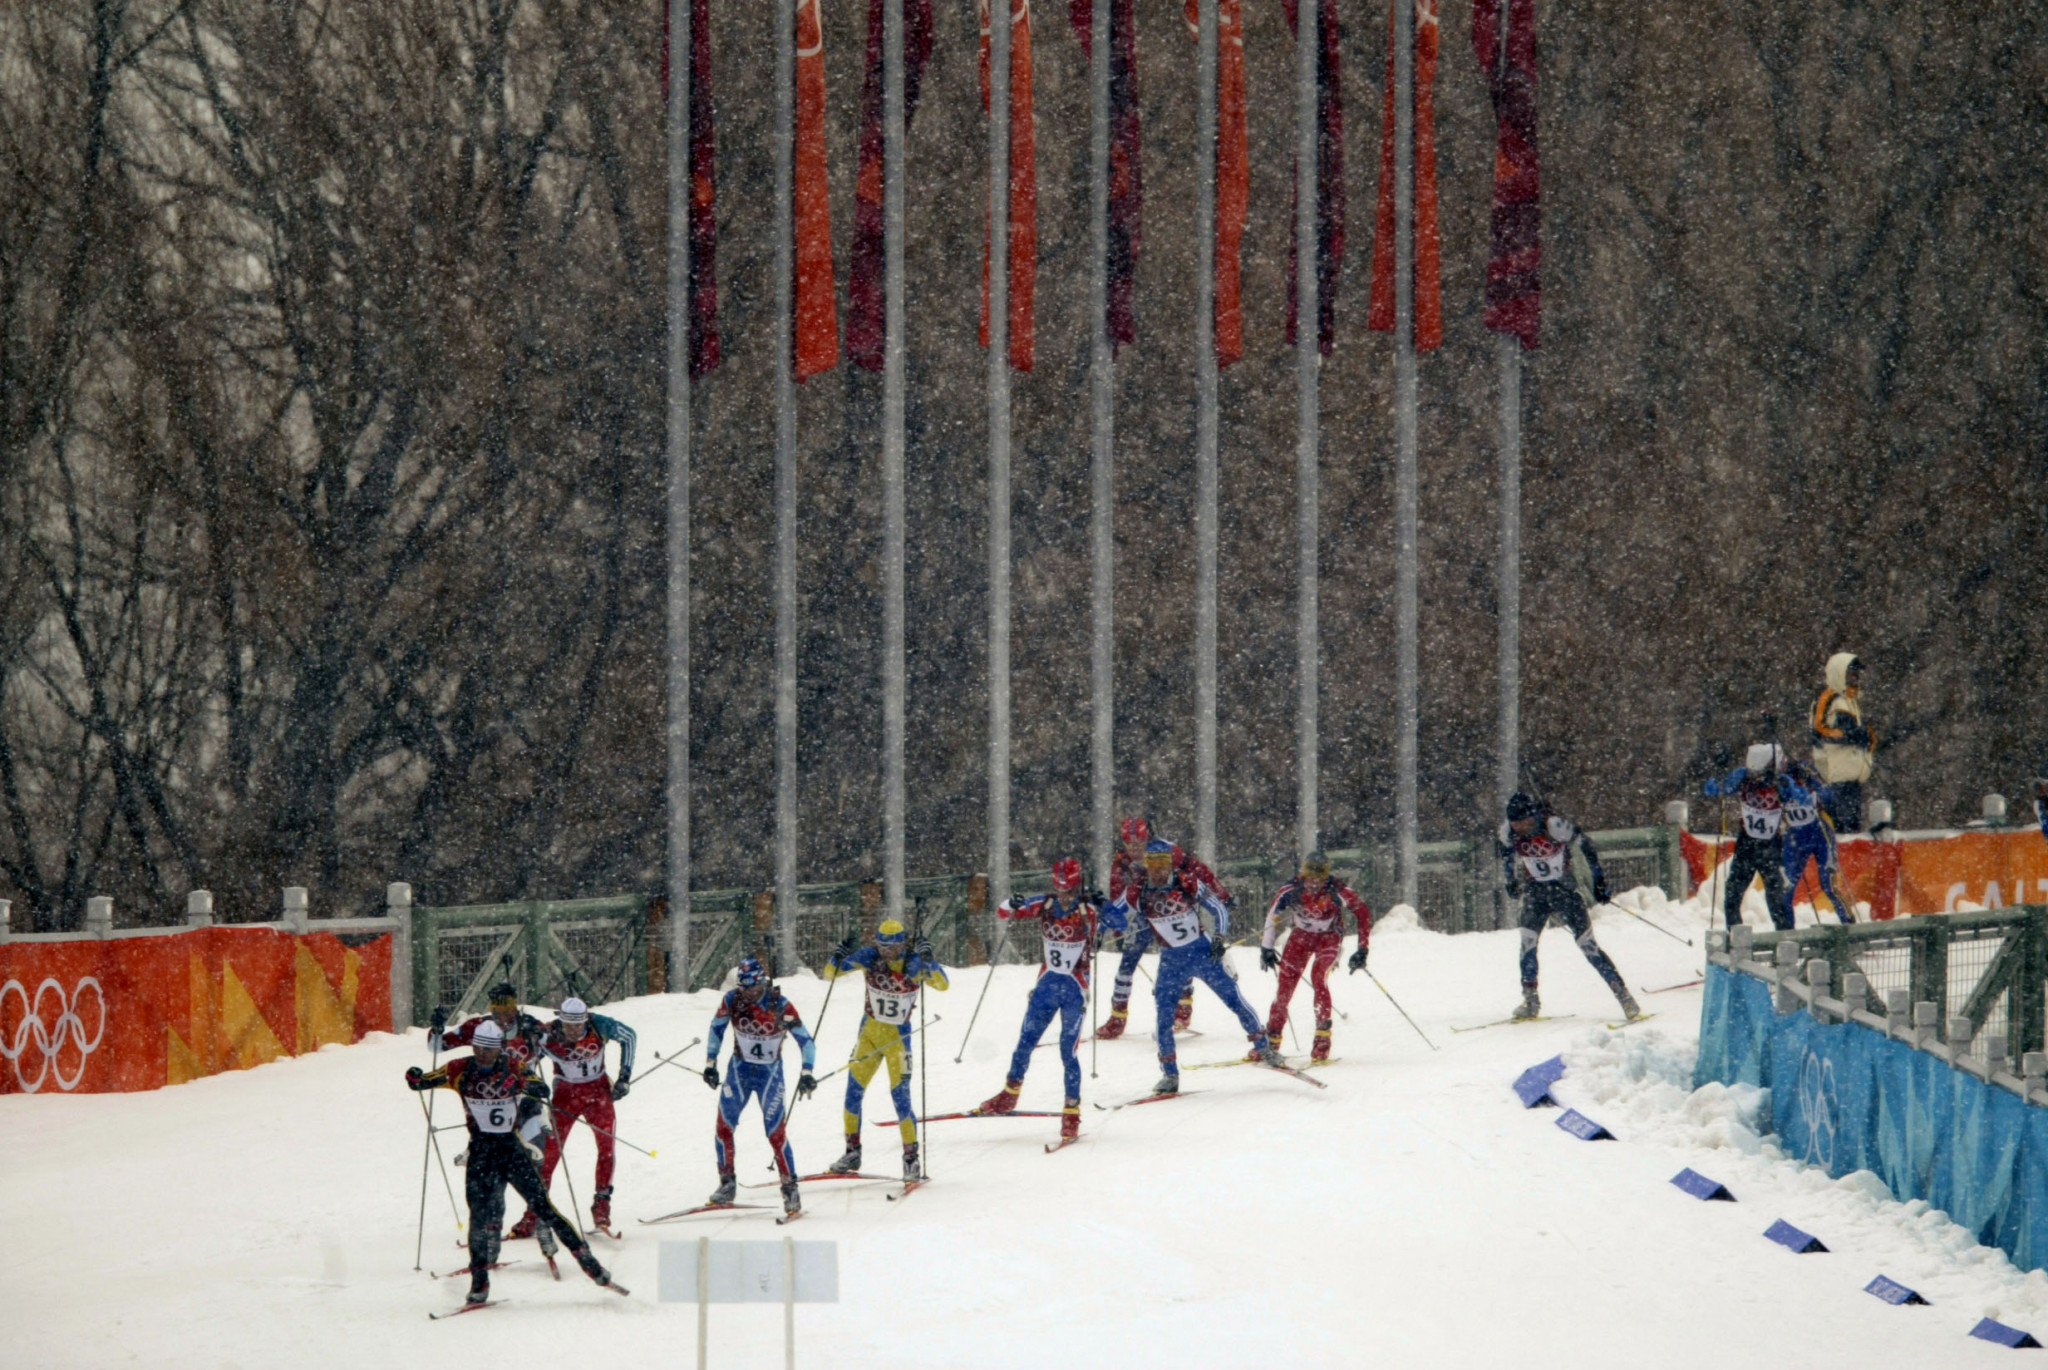 Officials behind Salt Lake City's potential bid for the 2030 Winter Olympic and Paralympic Games are in the process of drafting a plan on how to collaborate with Los Angeles 2028 ©Getty Images